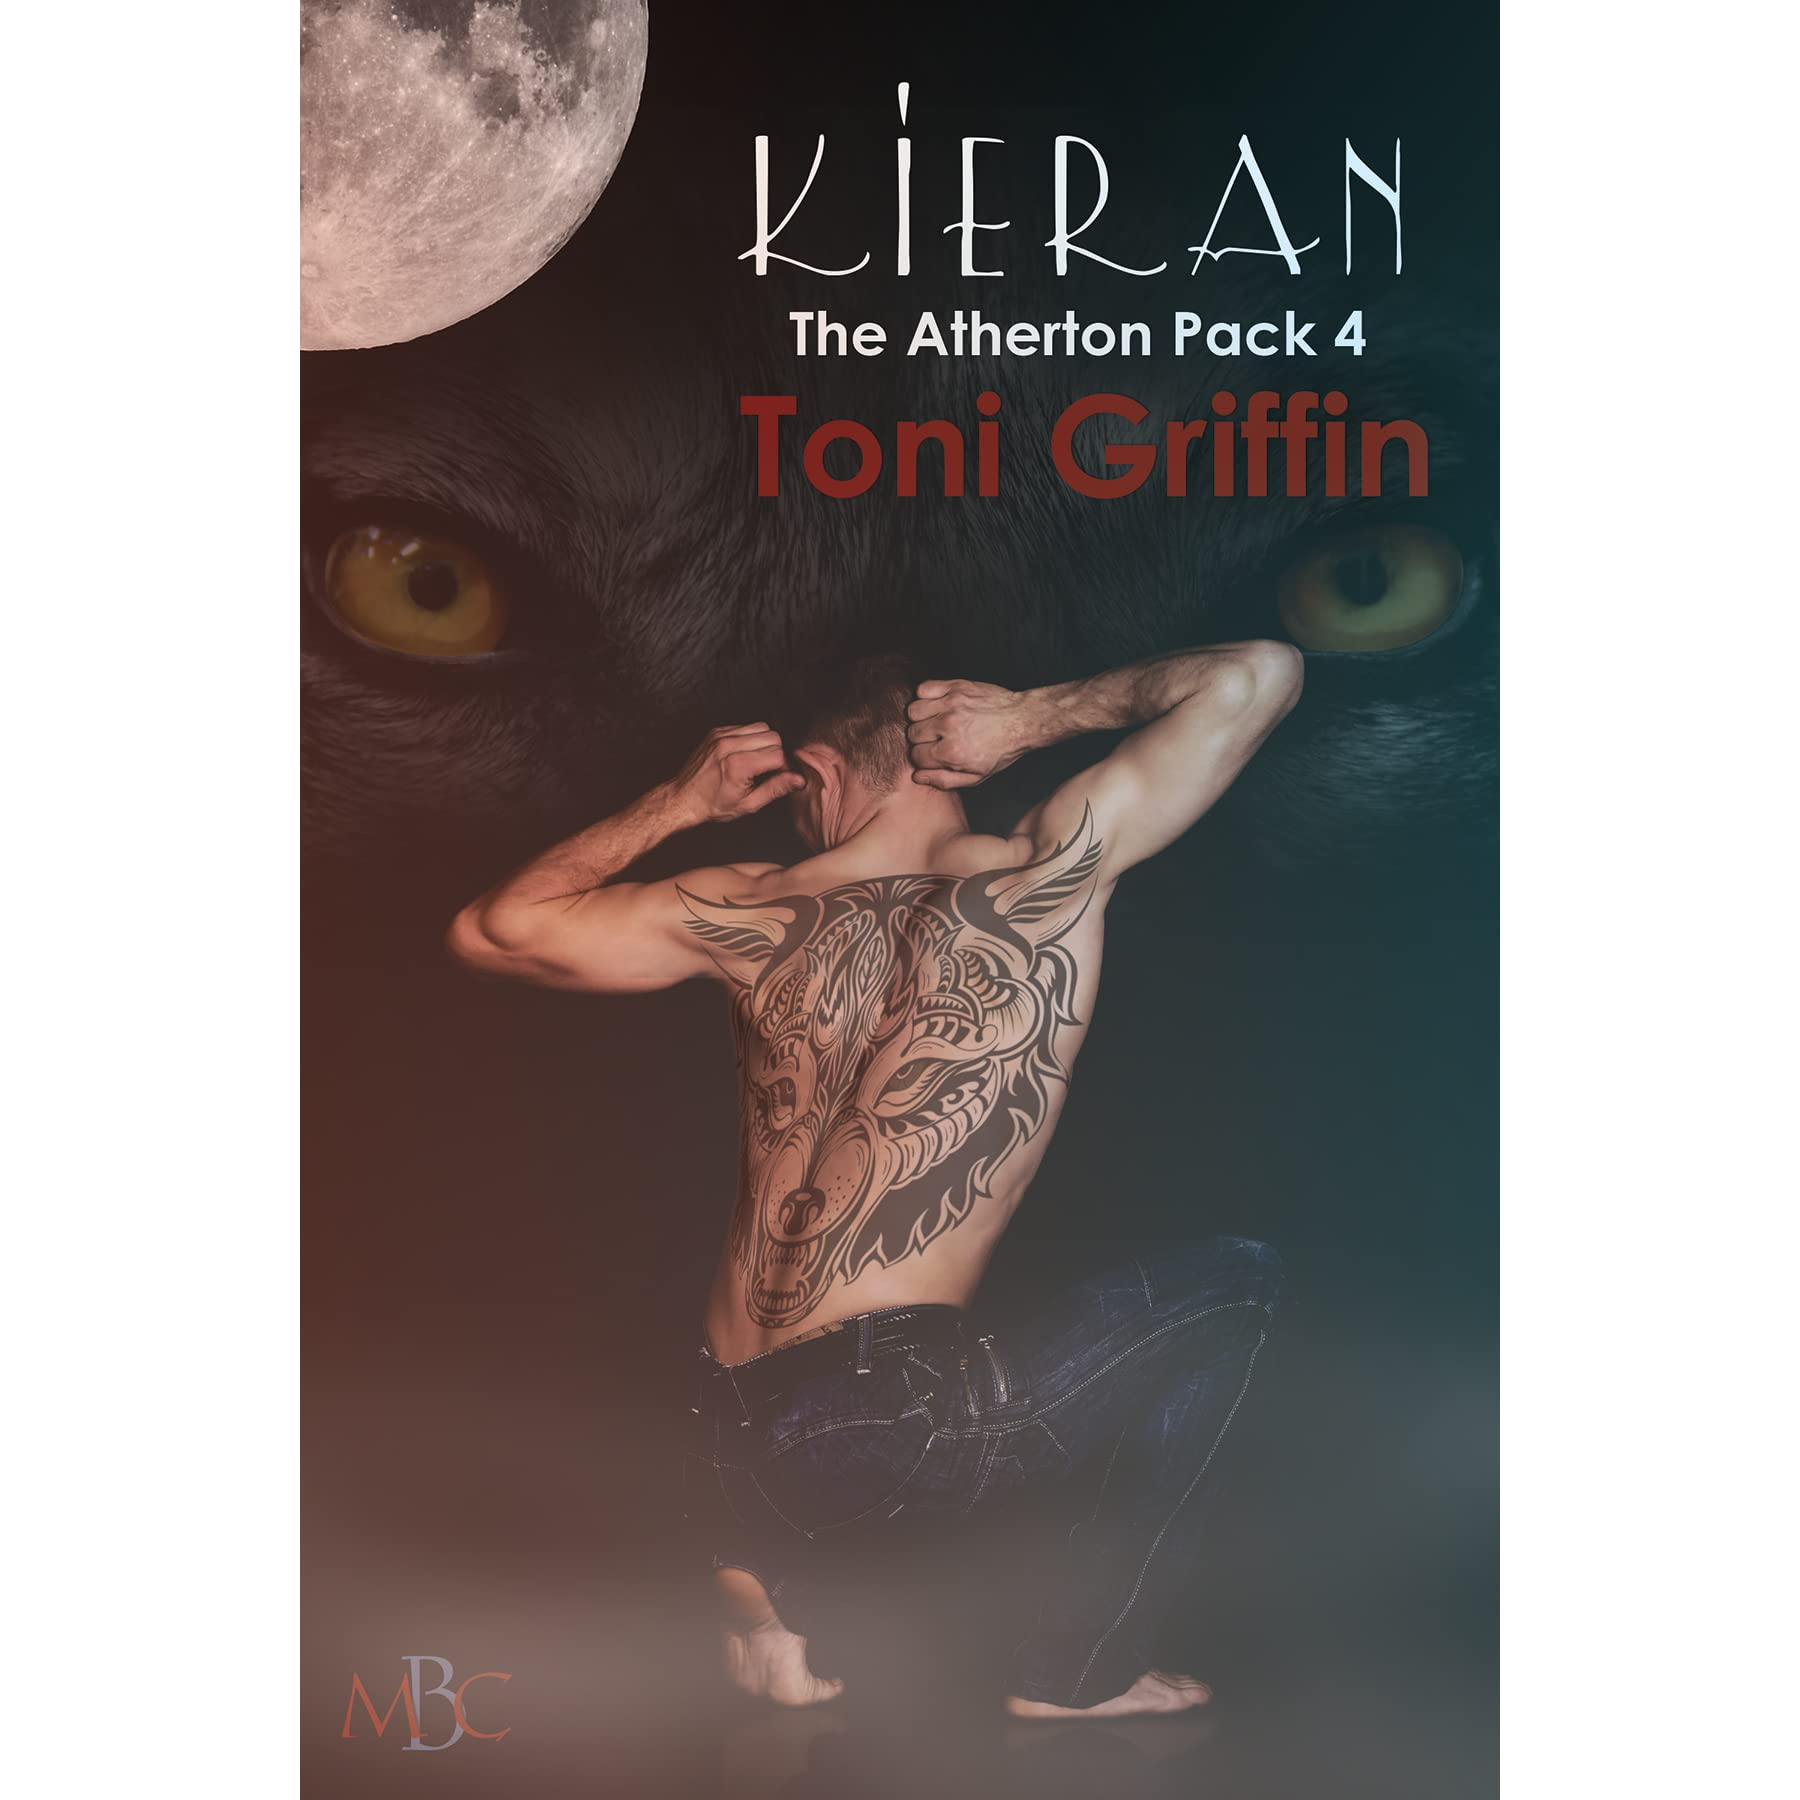 Kieran the atherton pack 4 by toni griffin reviews for The atherton